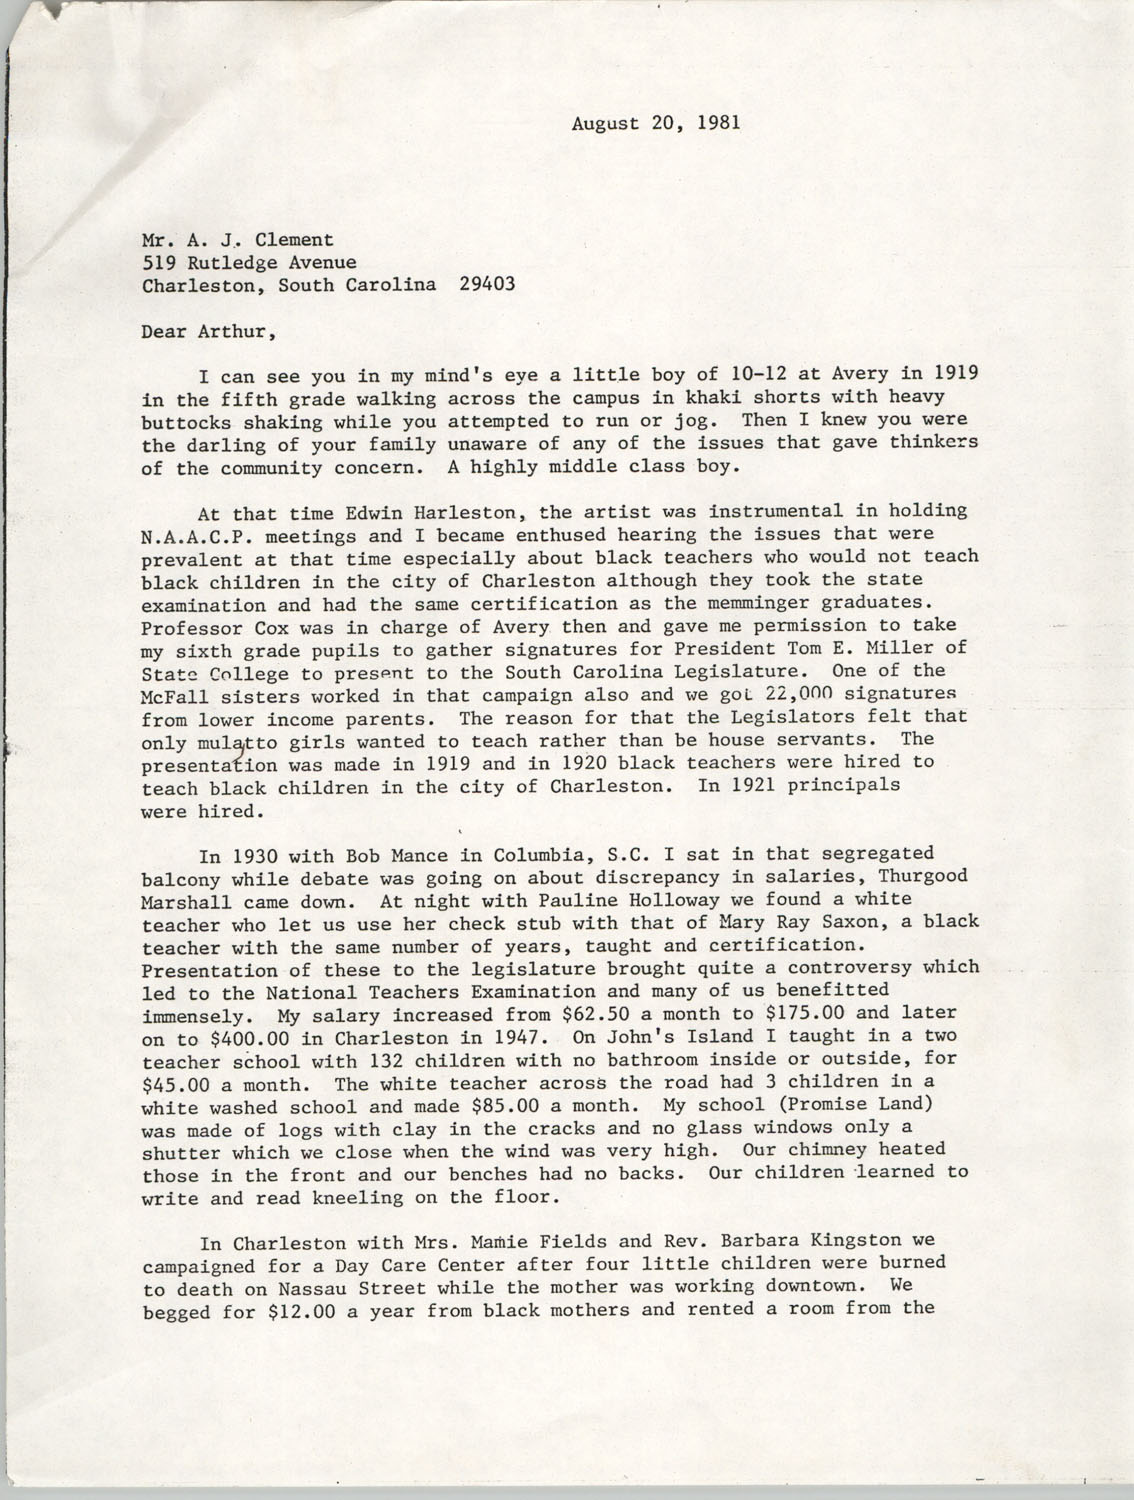 Letter from Septima P. Clark to A. J. Clement, August 20, 1981